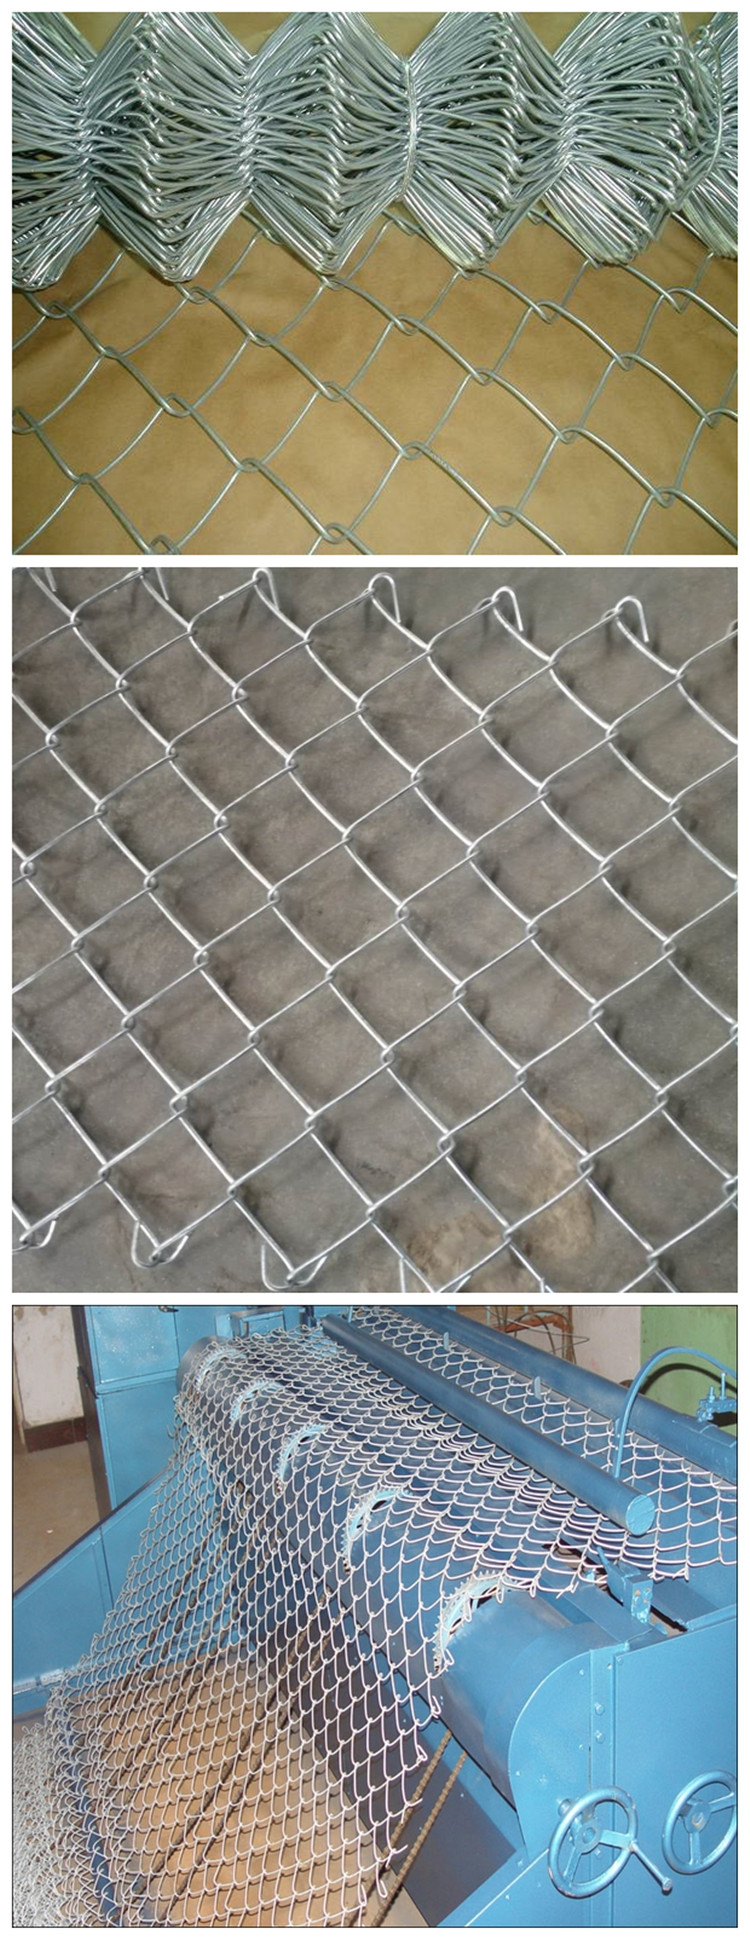 usd chain link fence 9 (7)